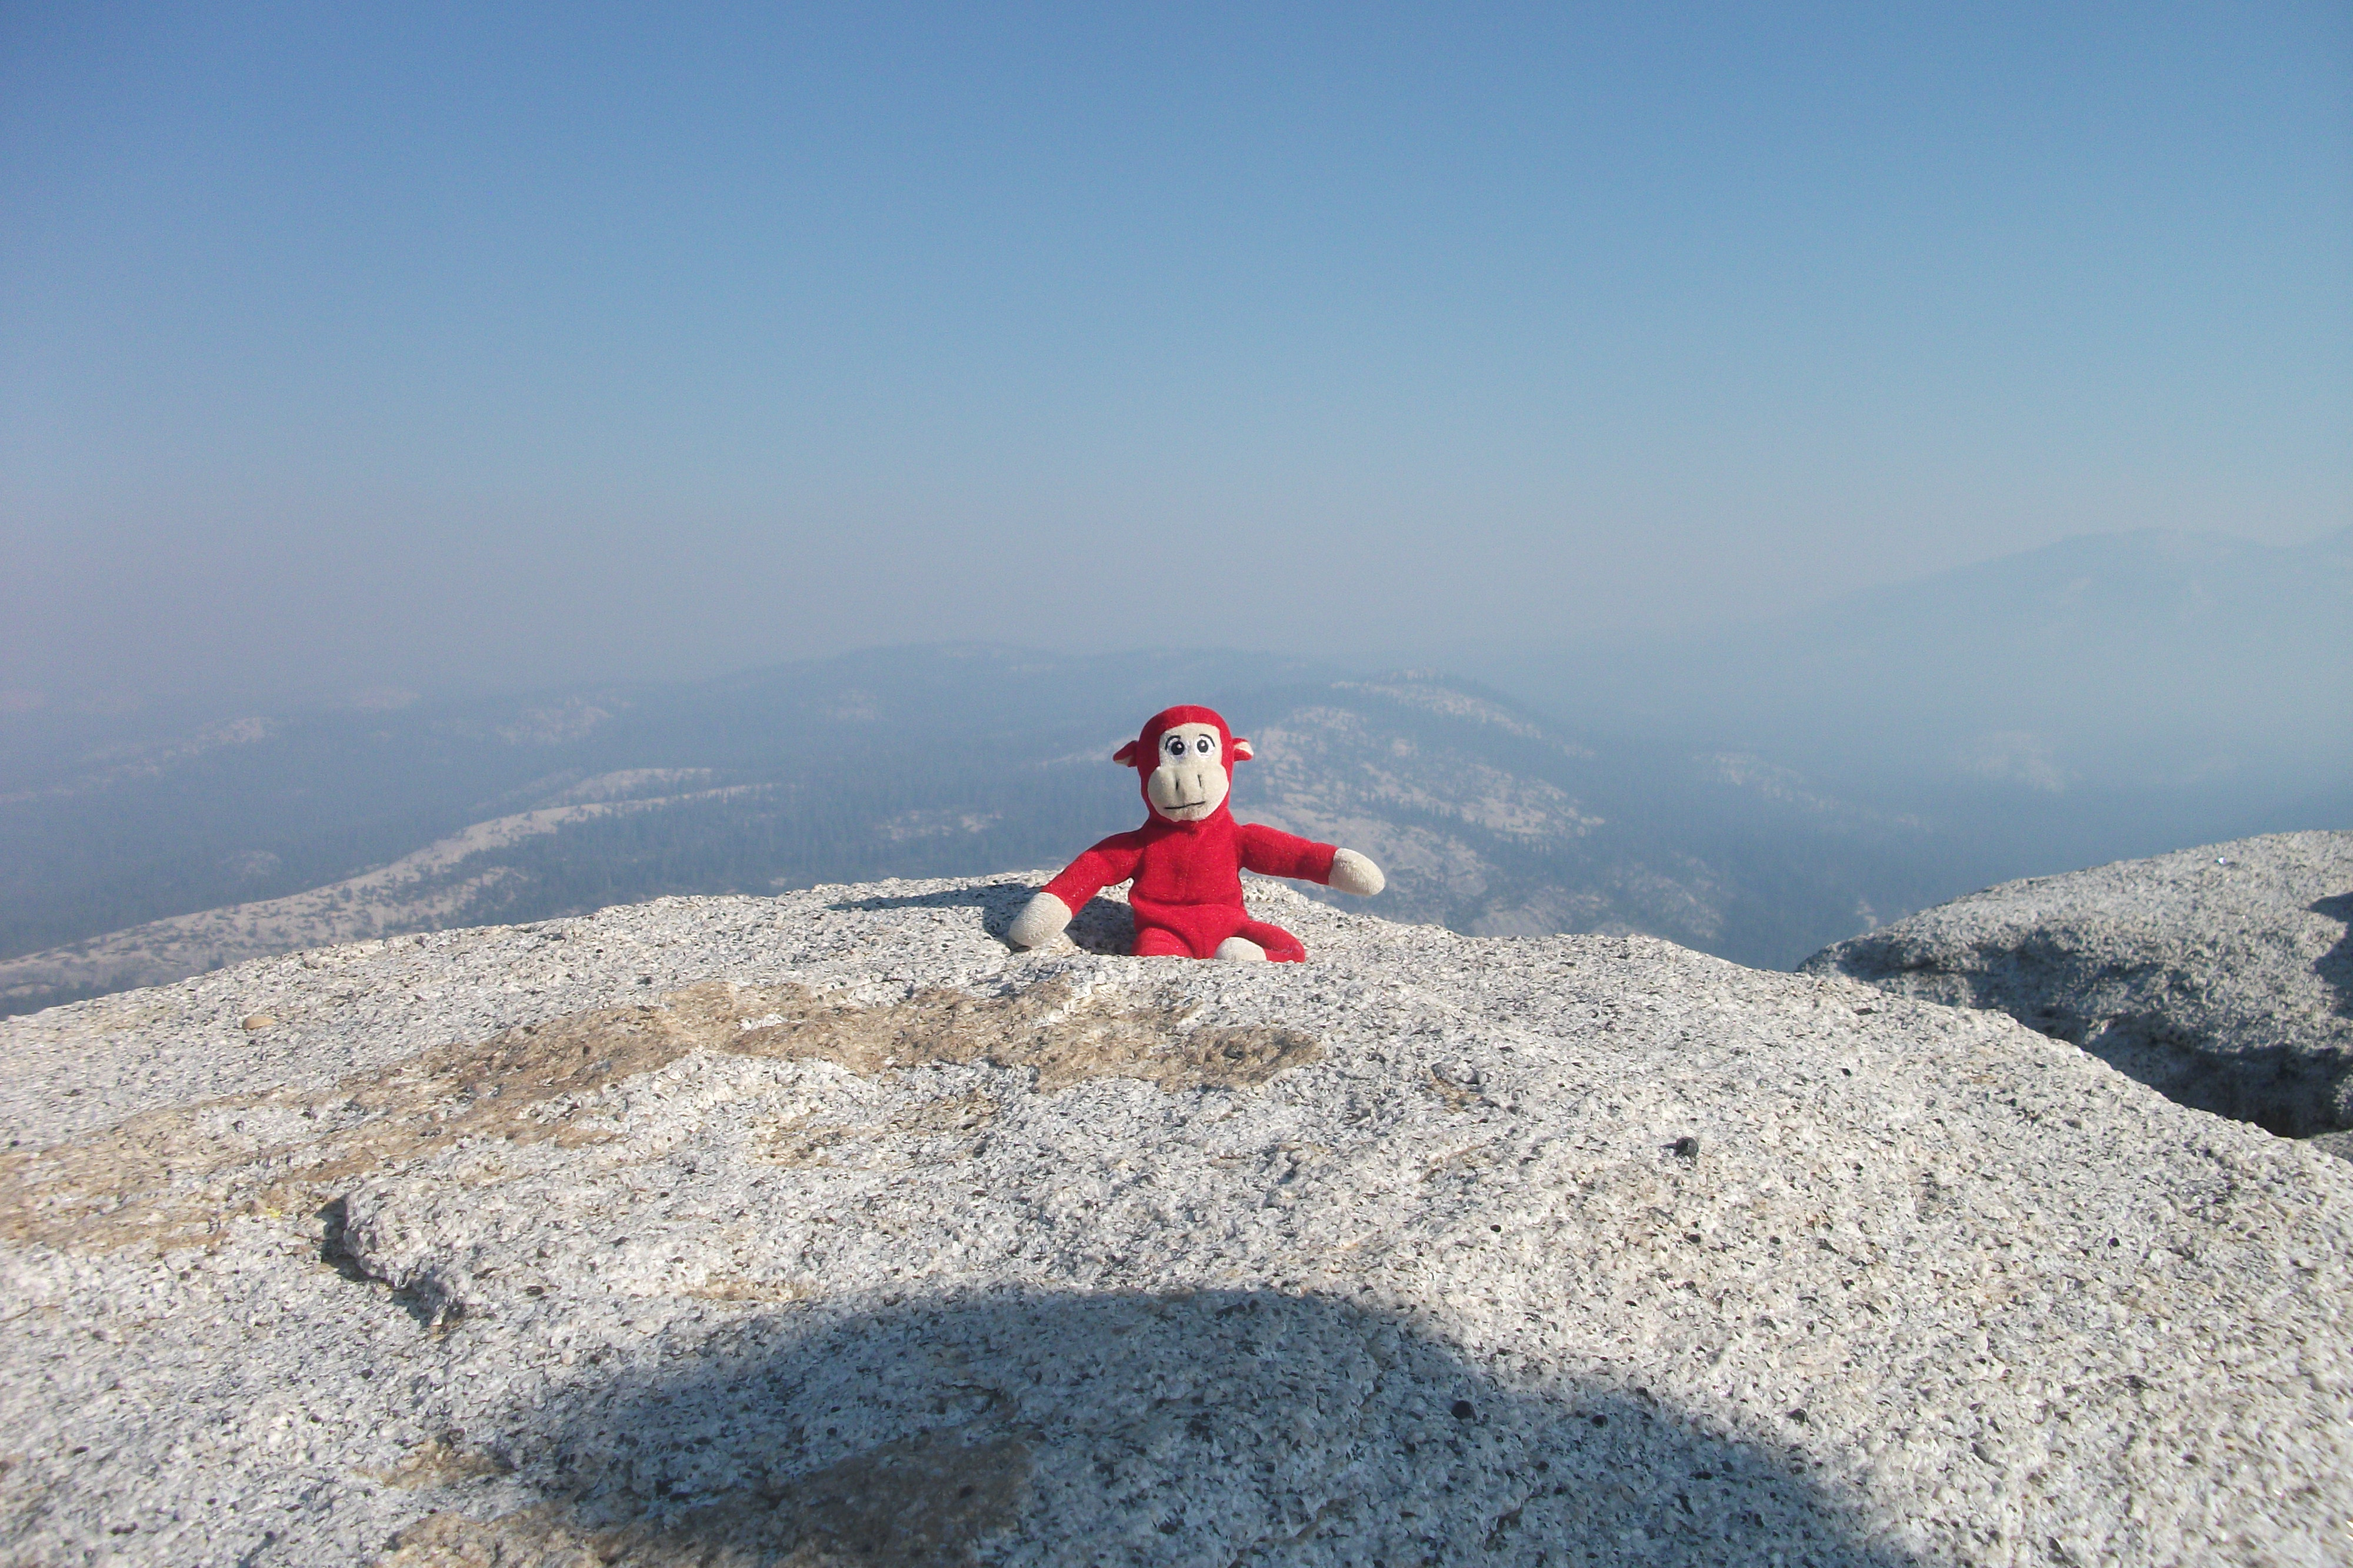 Bella's Red Monkey made it to the top